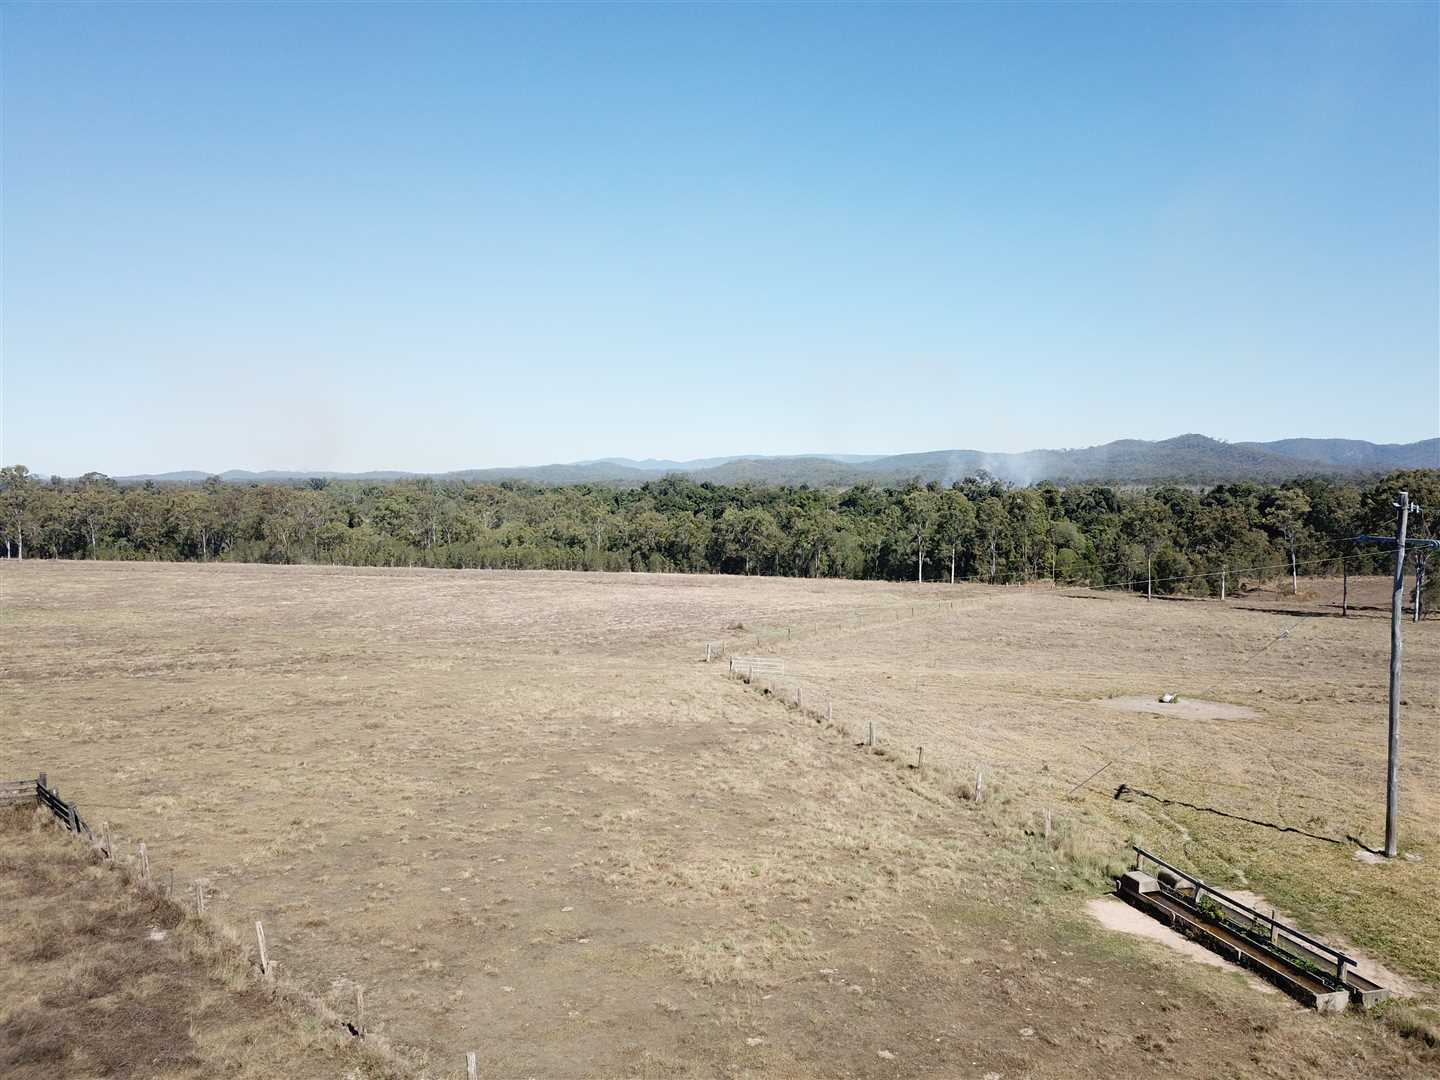 8/8/18 Centre Paddock and Western Paddock.Power underground down fence to submersible in Creek pumping to house and troughs # 1200 GPH